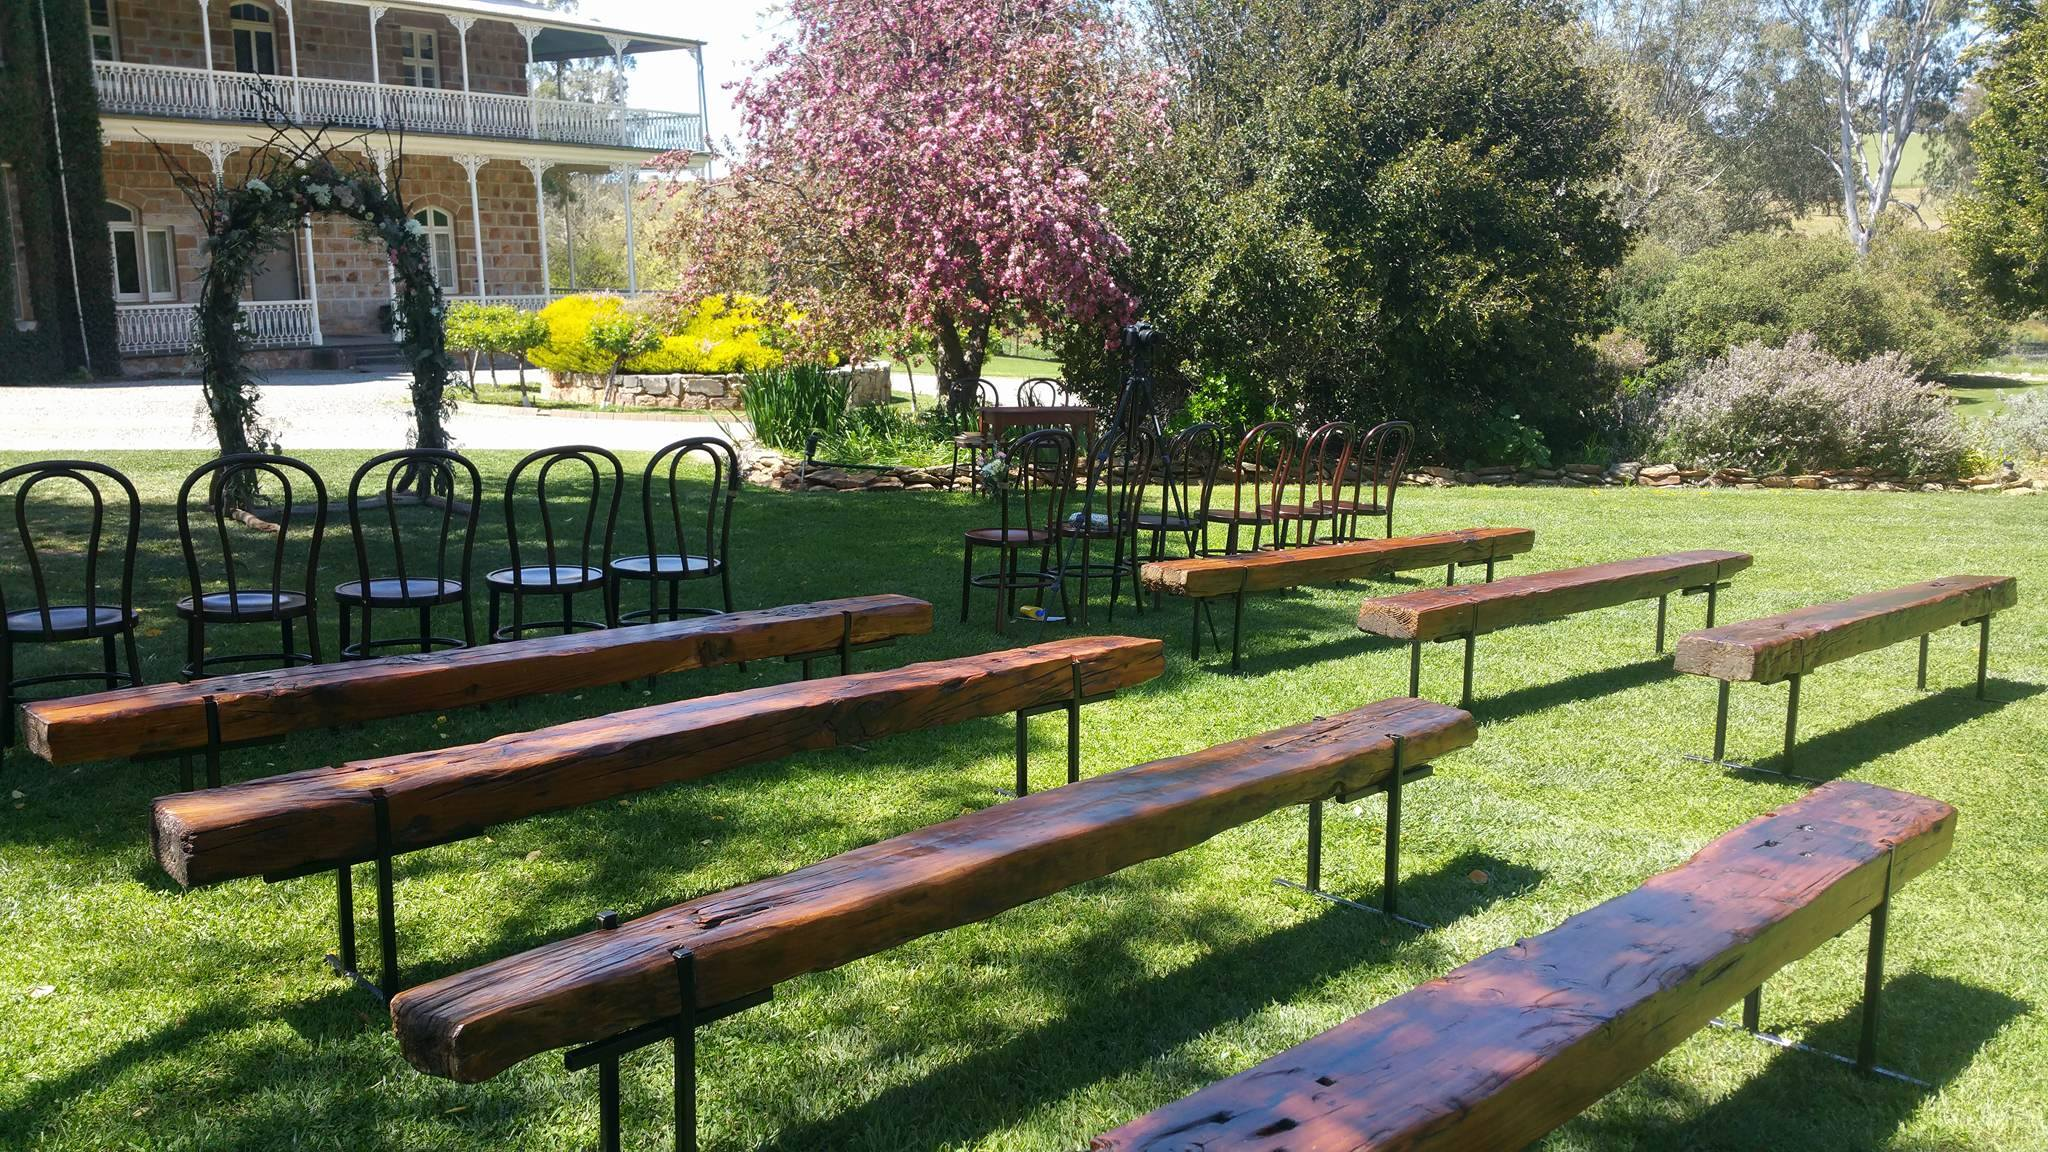 The Rustic Barn wedding ceremony benches at Bungaree Station, Clare.